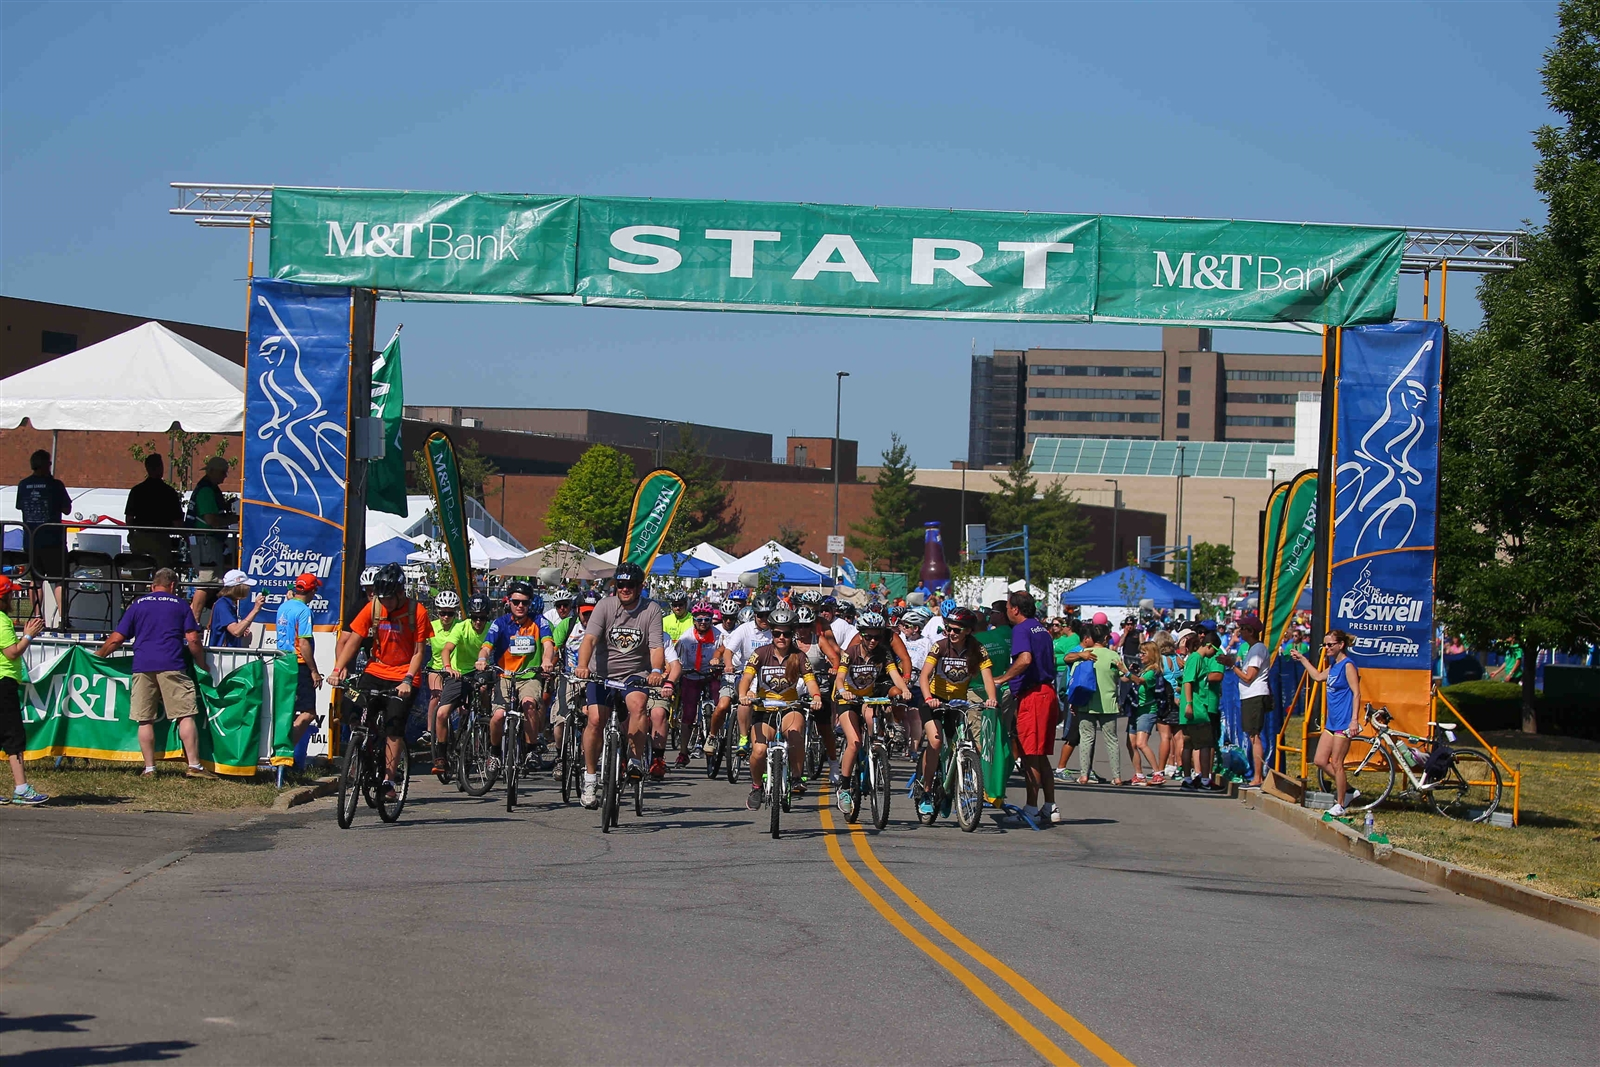 The Ride for Roswell has expanded to offer 11 different ride options. (John Hickey/Buffalo News file photo)